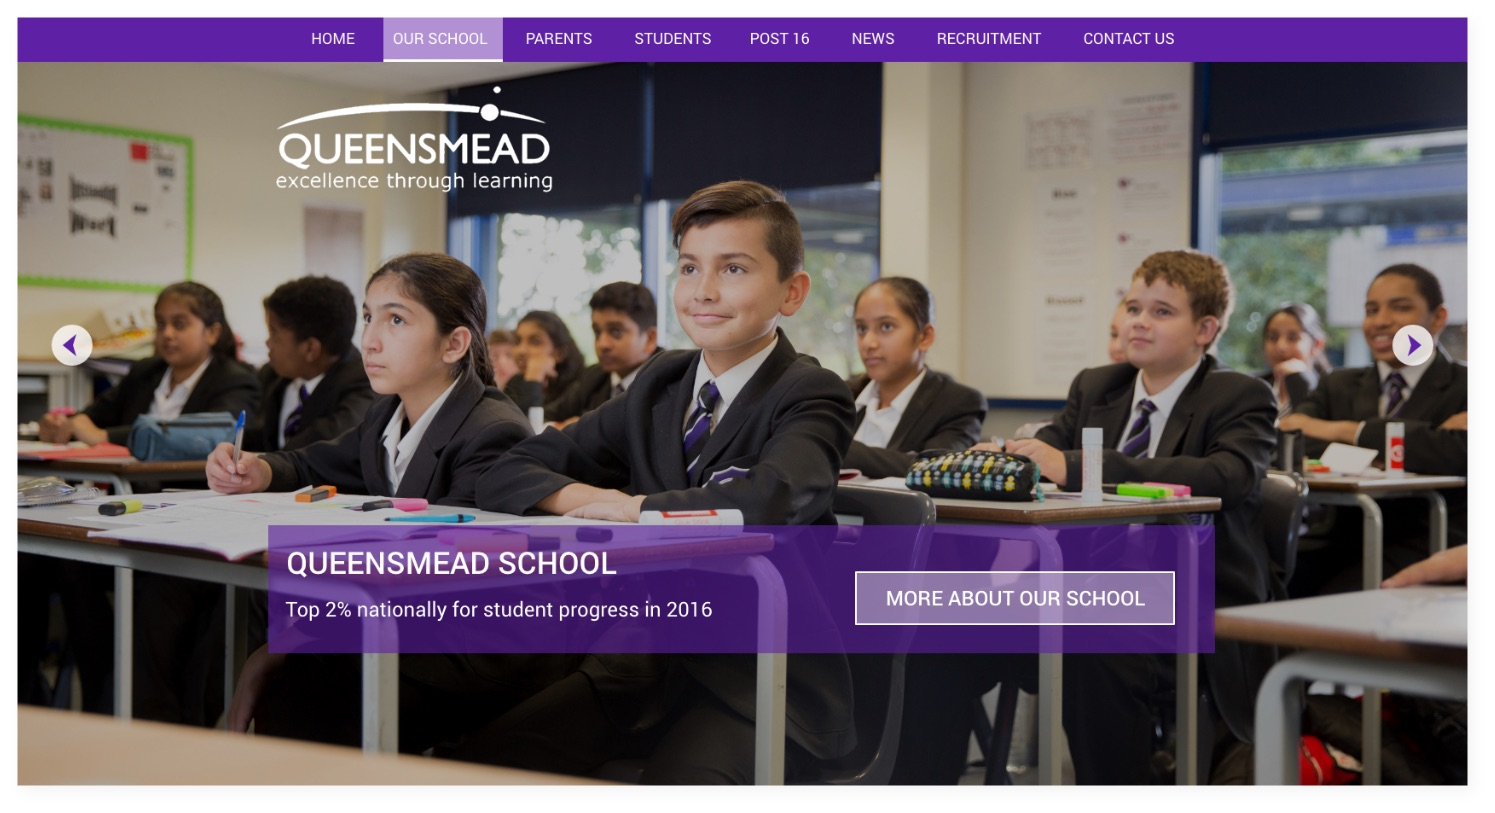 Queensmead Shool website